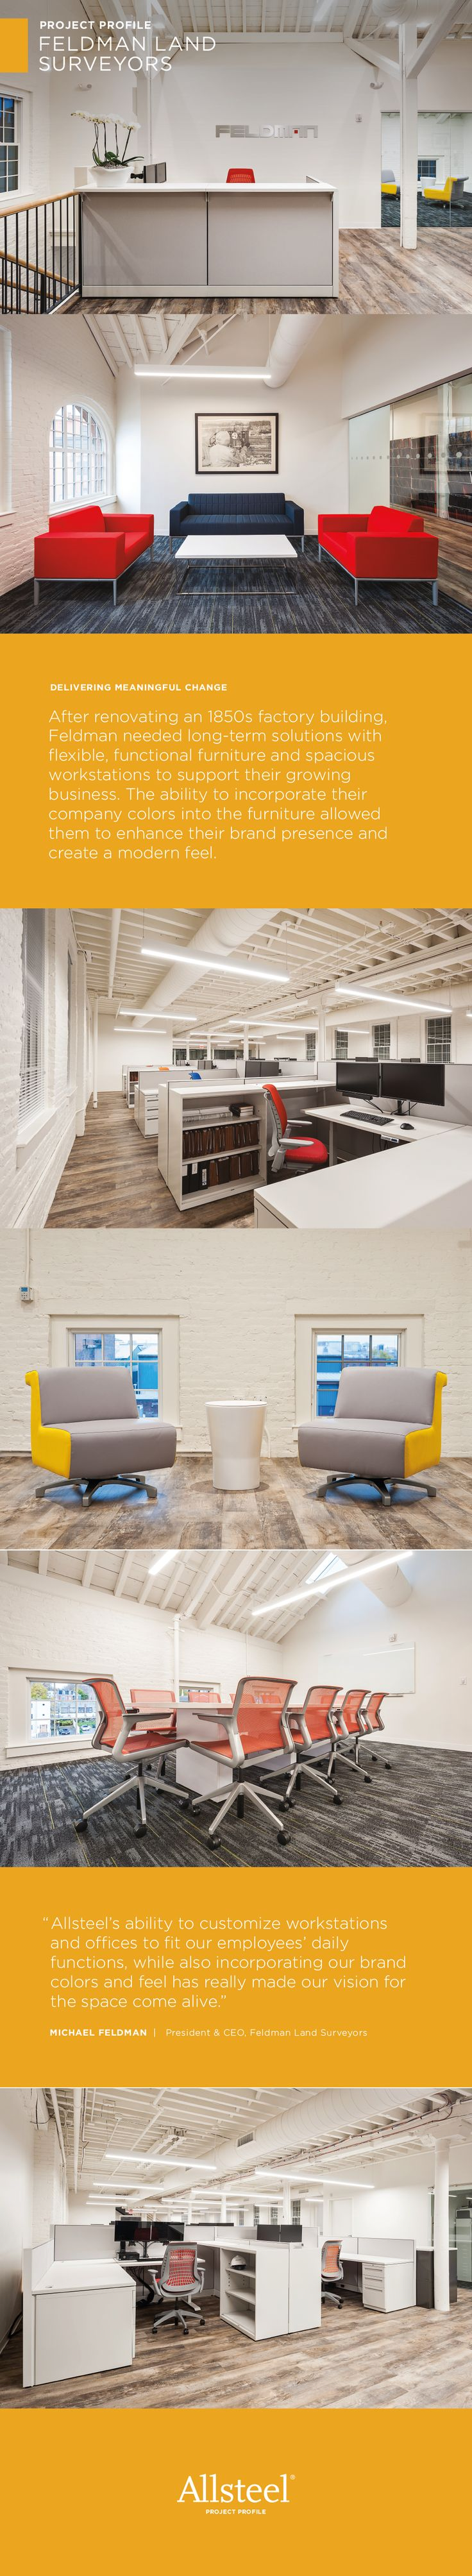 Feldman Land Surveyor's low workstation panels and colorful seating options support impromptu collaborations, while increased light provides a more open feel.   #Interiors #WorkplaceDesign